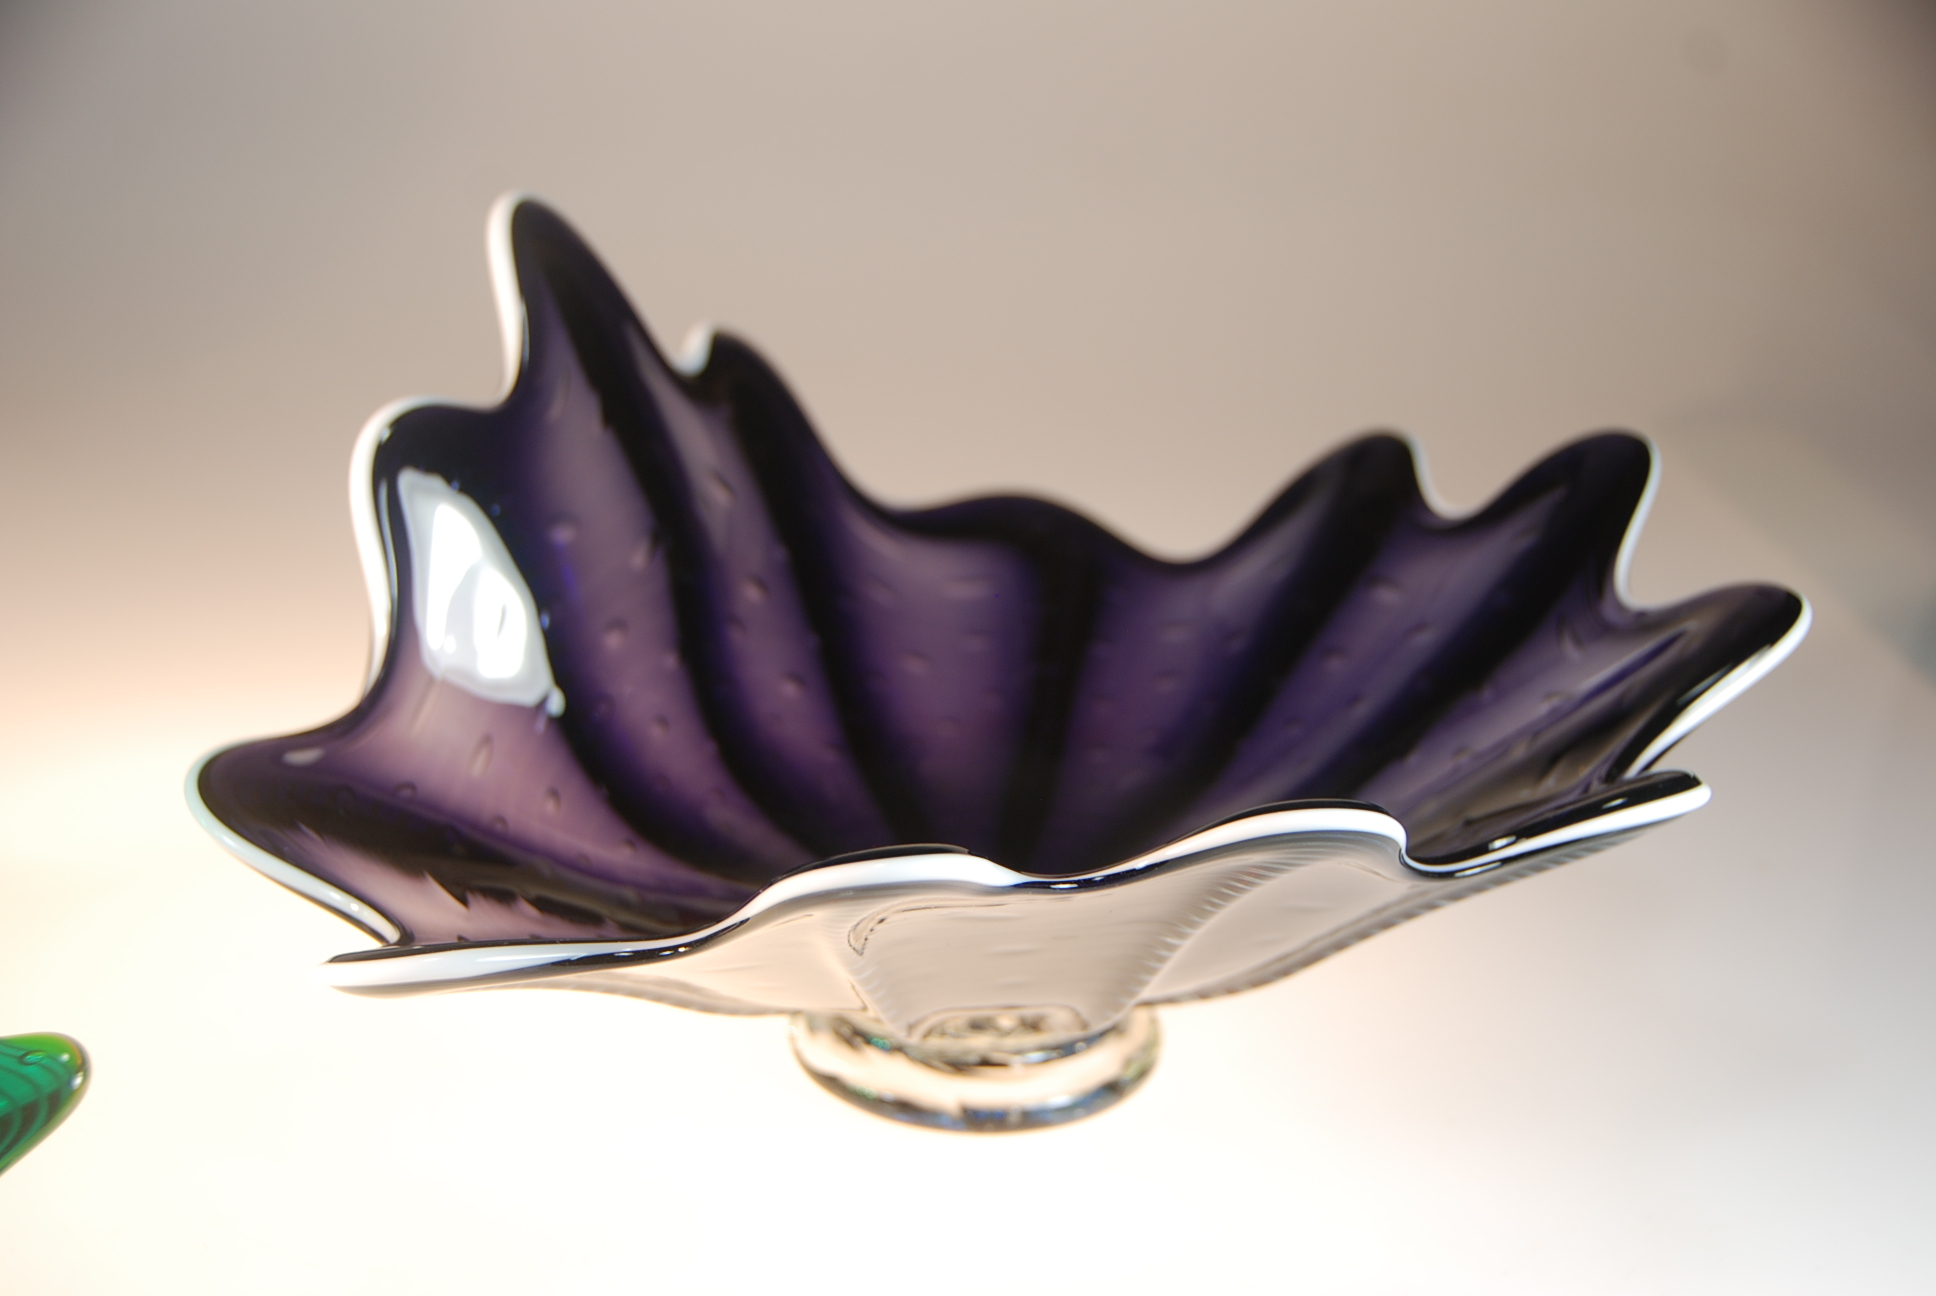 """The latest series of """"Splash Dishes"""" by rick strini. Imagine a splash of water and the way the water splashes upward."""